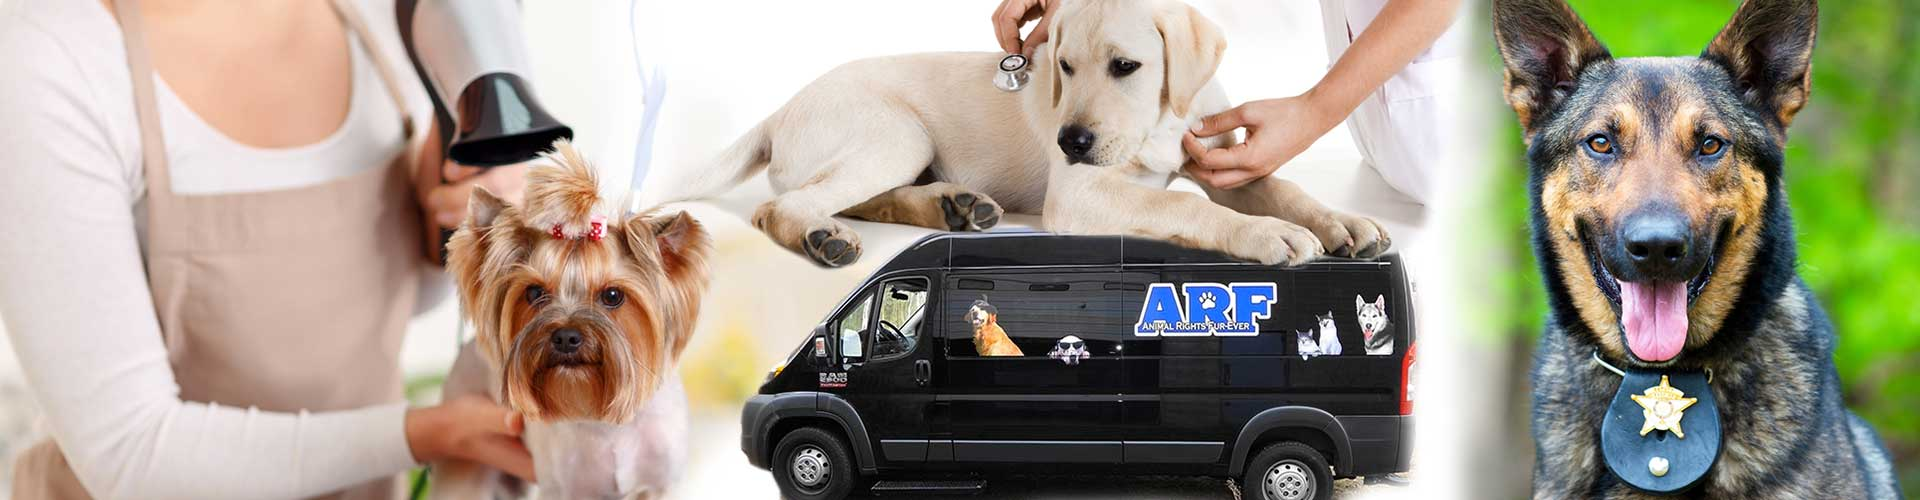 Air conditioning and heating climate control for animal and pet transport